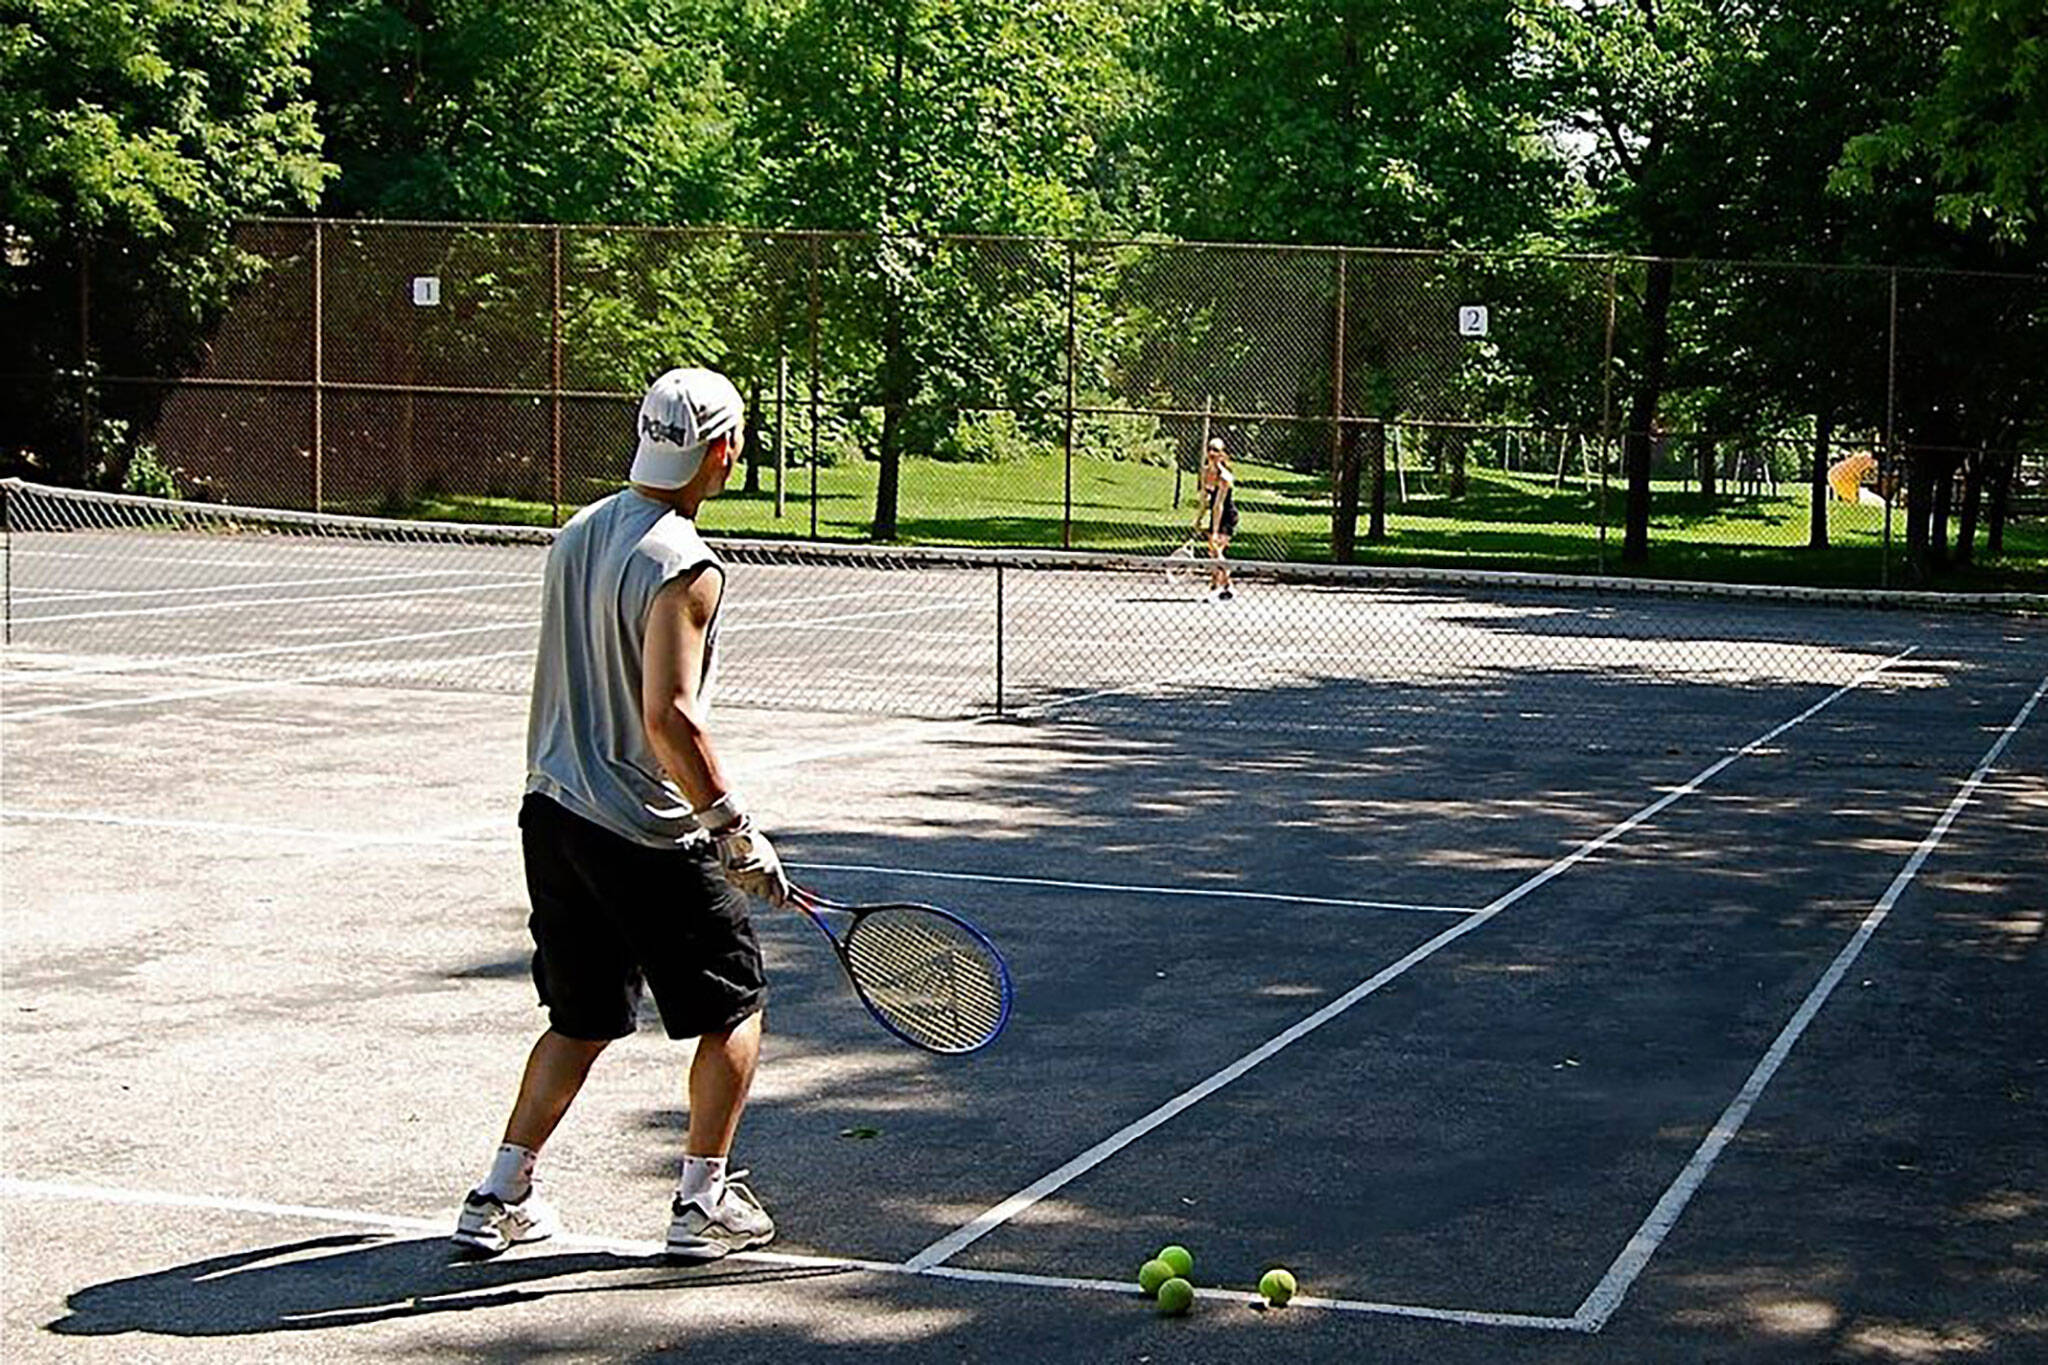 edenbridge tennis club toronto